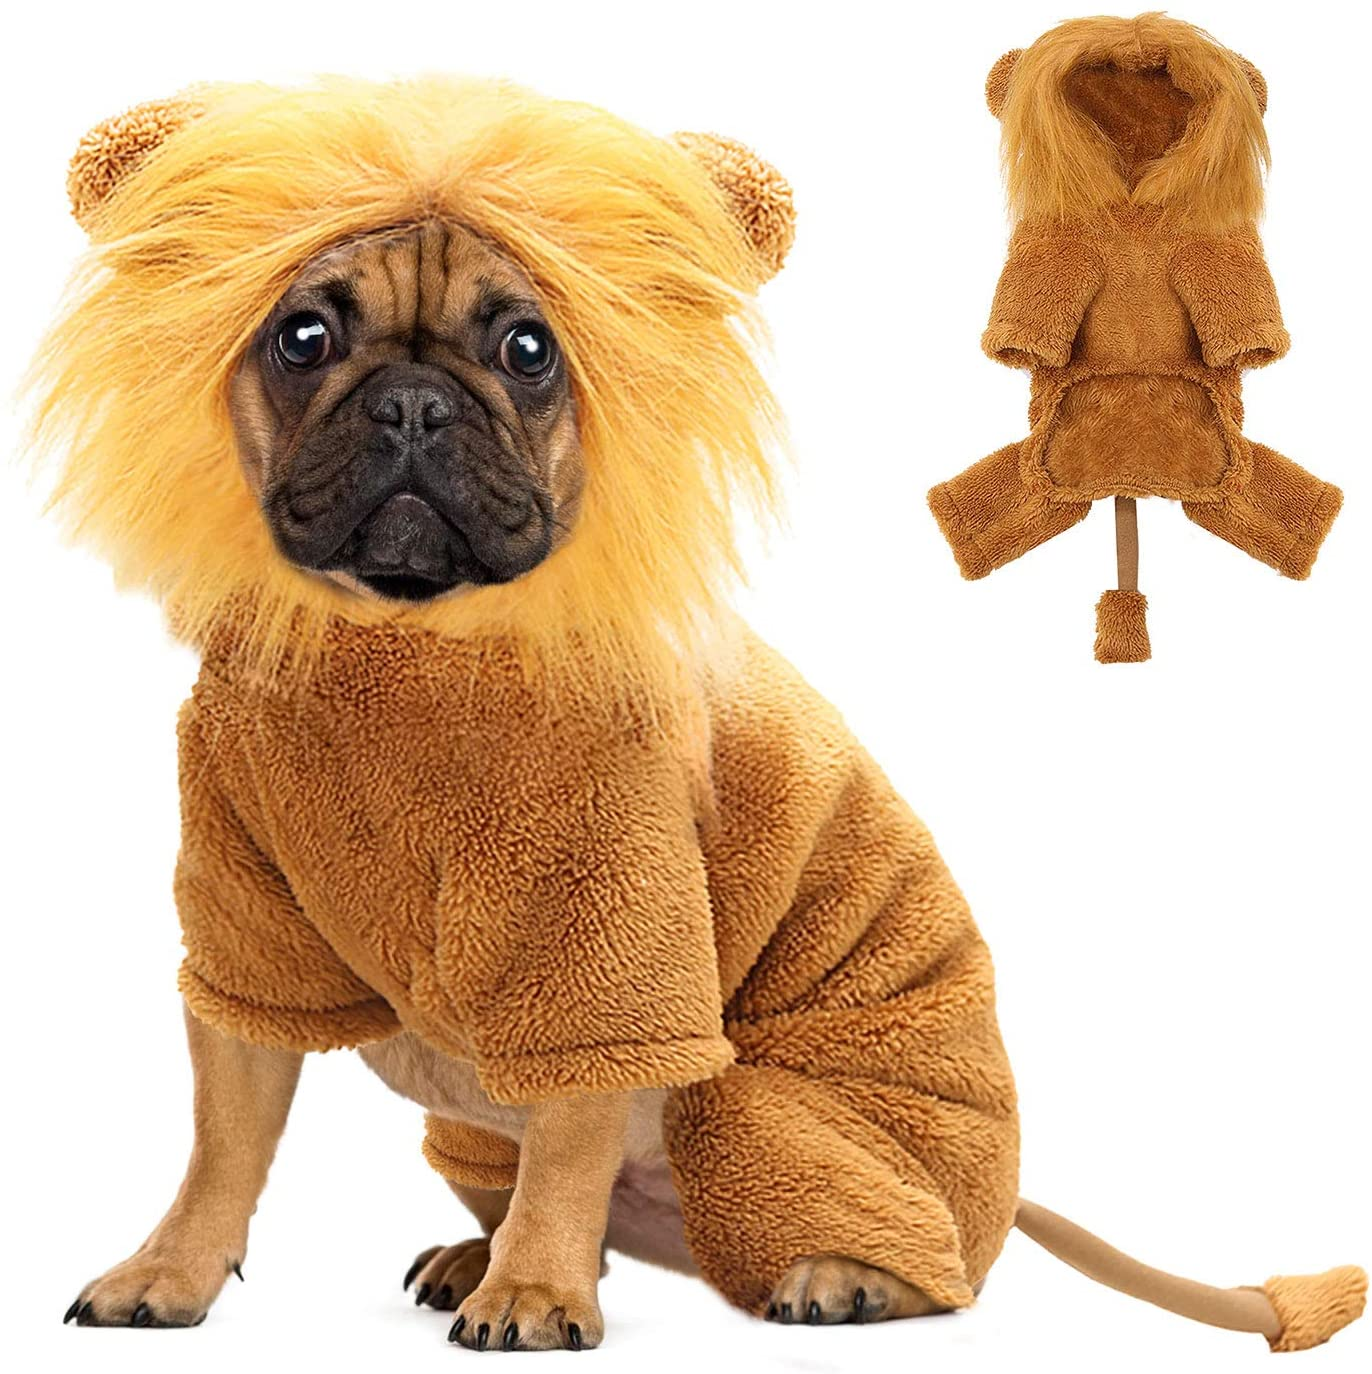 BWOGUE Dog Lion Costume for Dogs Clothes Pet Halloween Cosplay Dress Party Dressing up Dogs Cats Animal Fleece Hoodie Warm Outfits Clothes